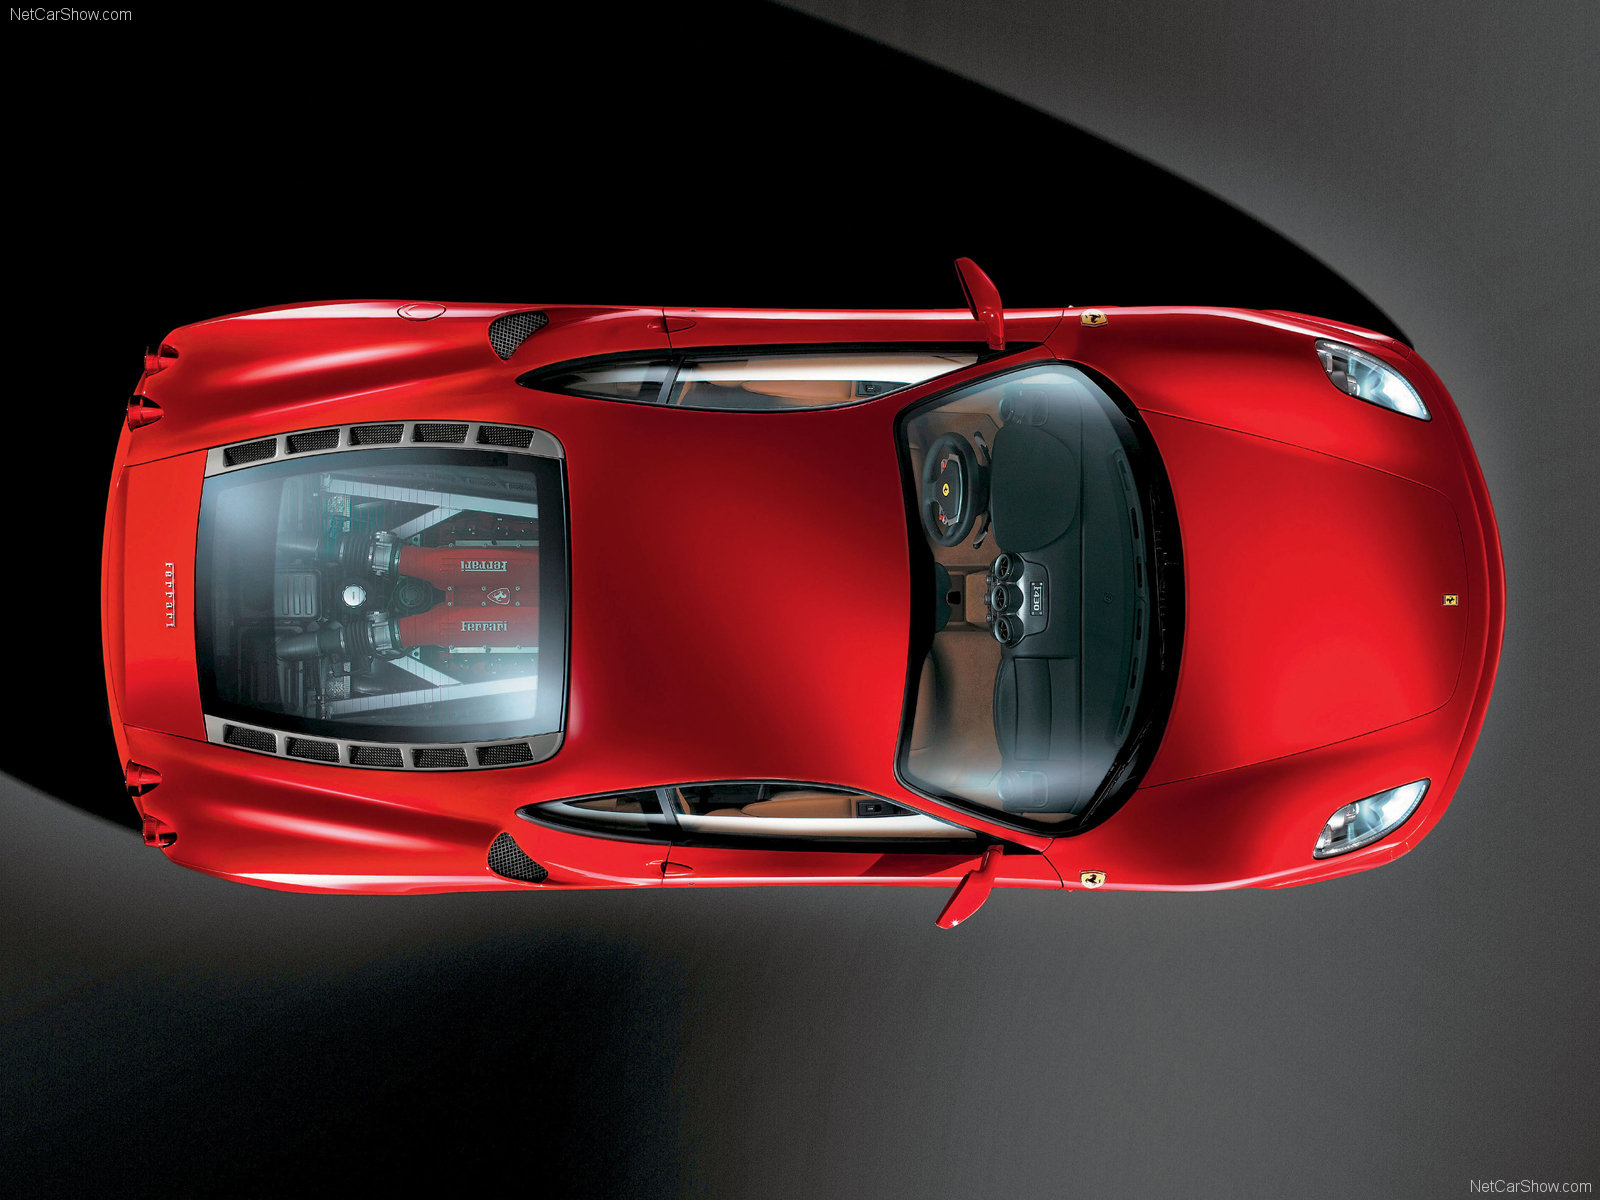 Ferrari 458 Italia Top View high resolution widescreen (1600 x 1200 )